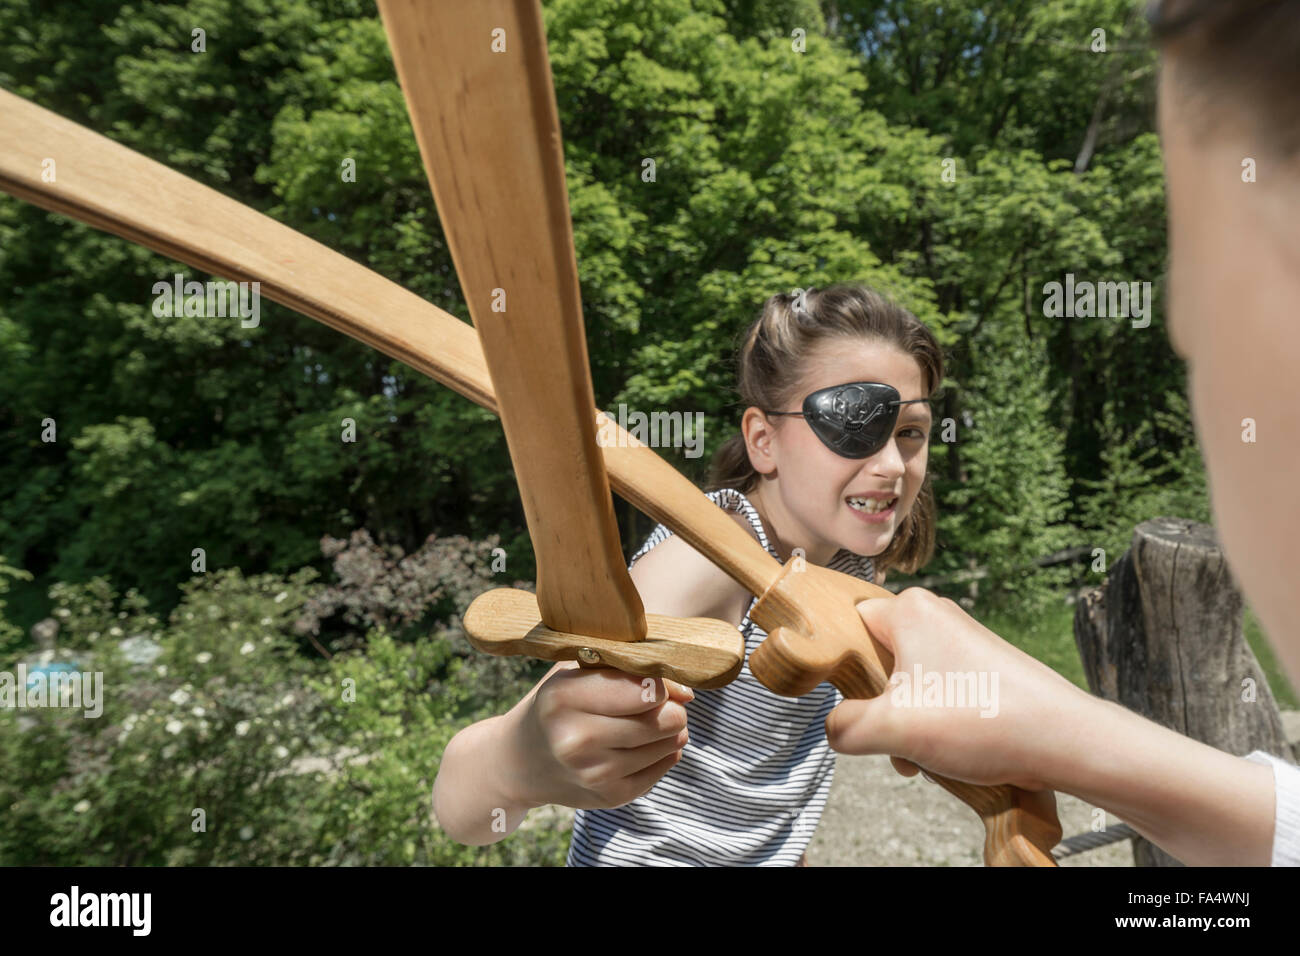 Two girls pretending as pirates fighting with swords in adventure playground, Bavaria, Germany - Stock Image